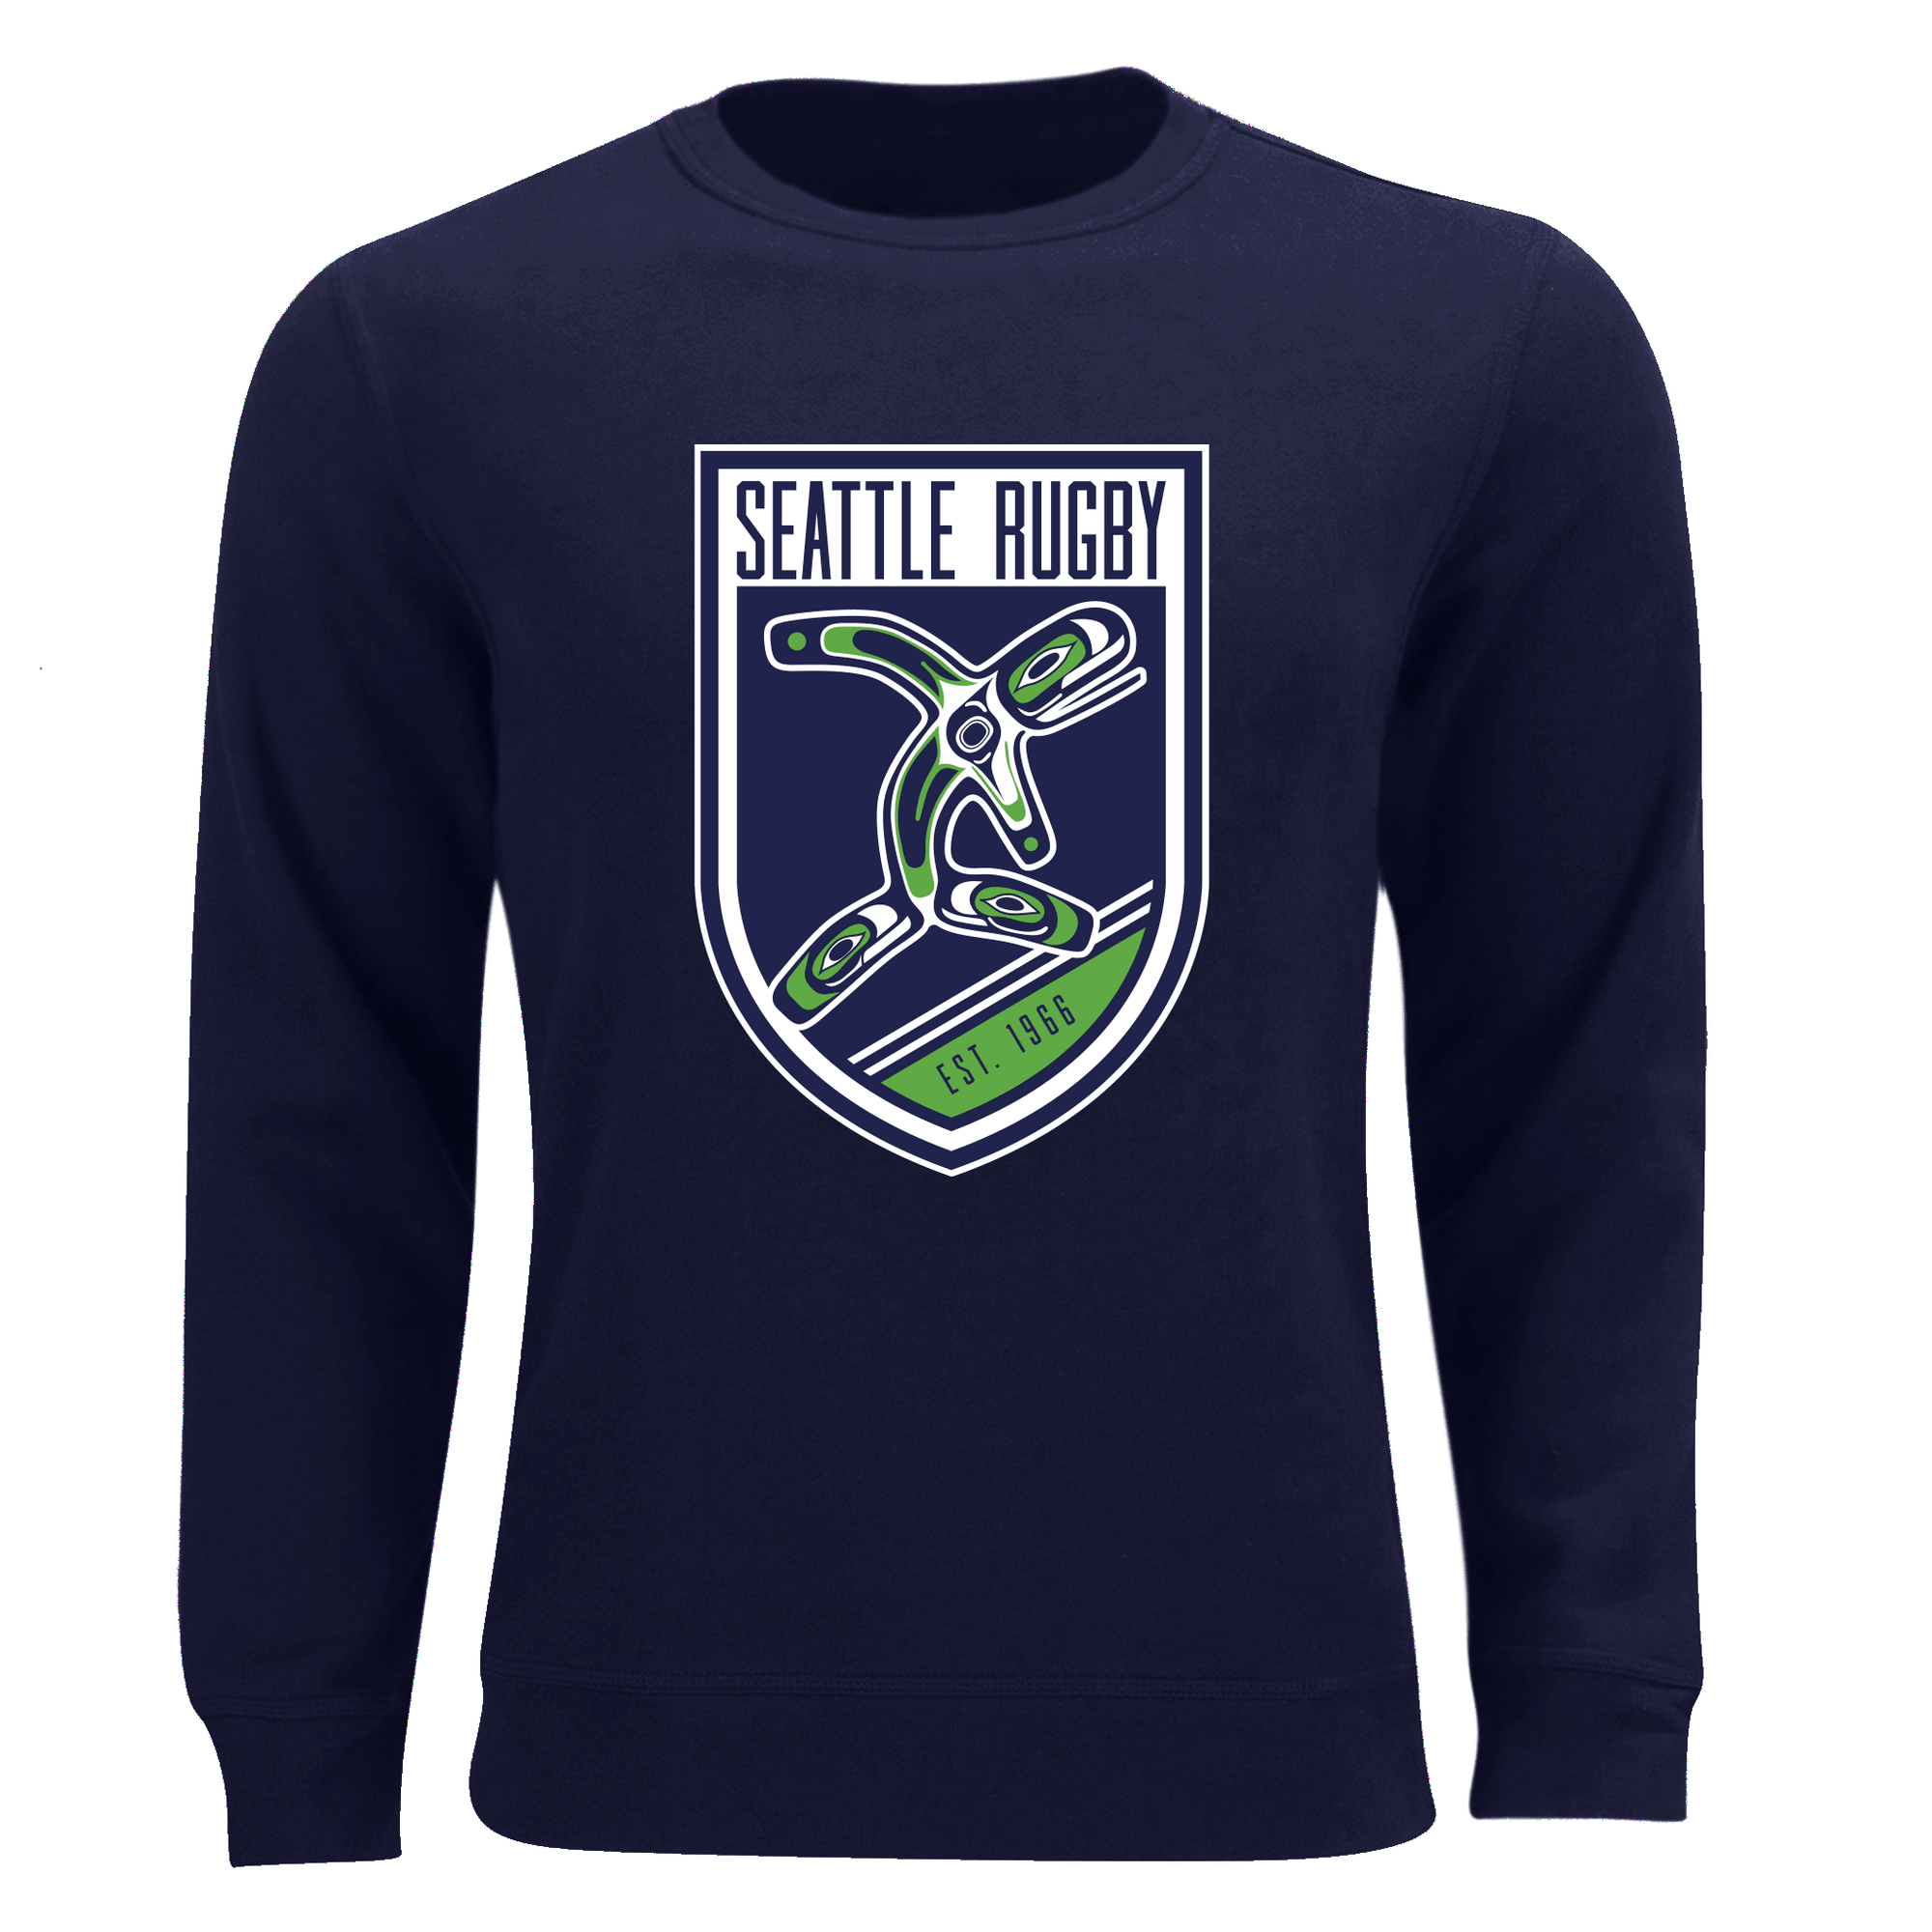 Seattle Rugby Club Unisex Sweatshirt Navy